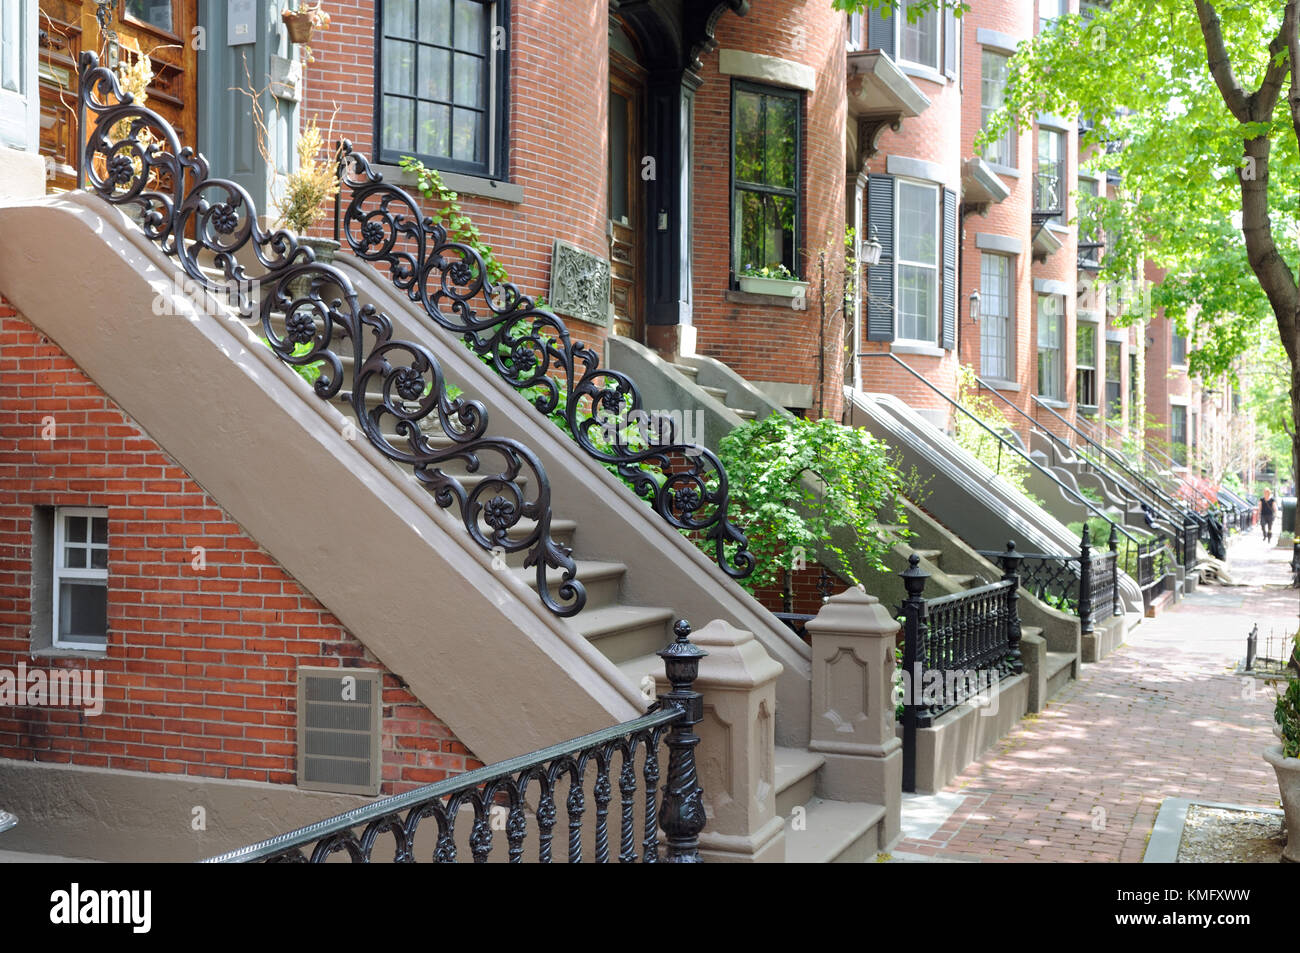 Townhouse Apartments In Boston South End. Brick Sidewalk, Stone Steps, Iron  Fences And Railings With Running Rose Patterns.